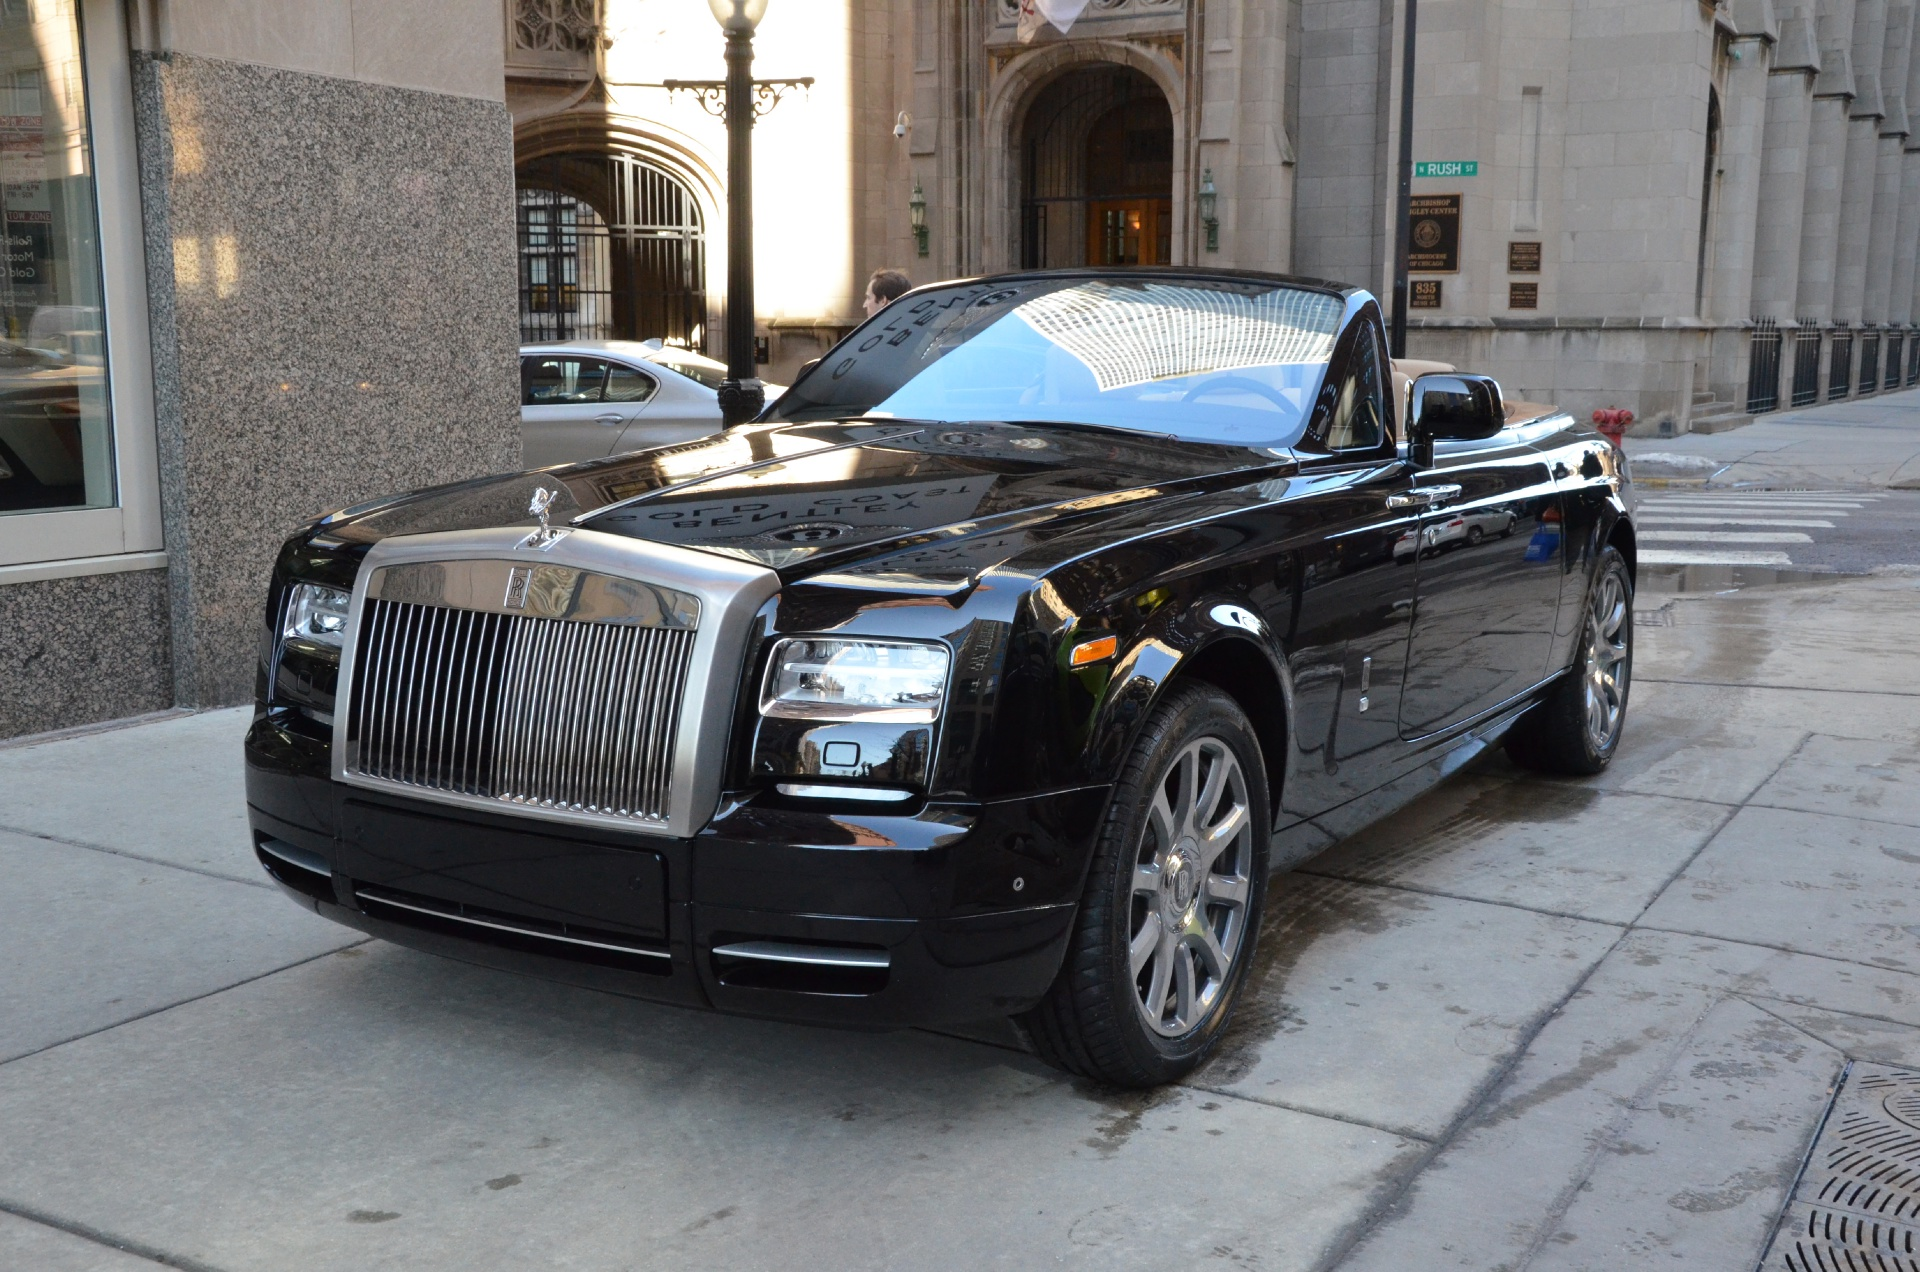 2014 Rolls royce Phantom Drophead Coupe #6